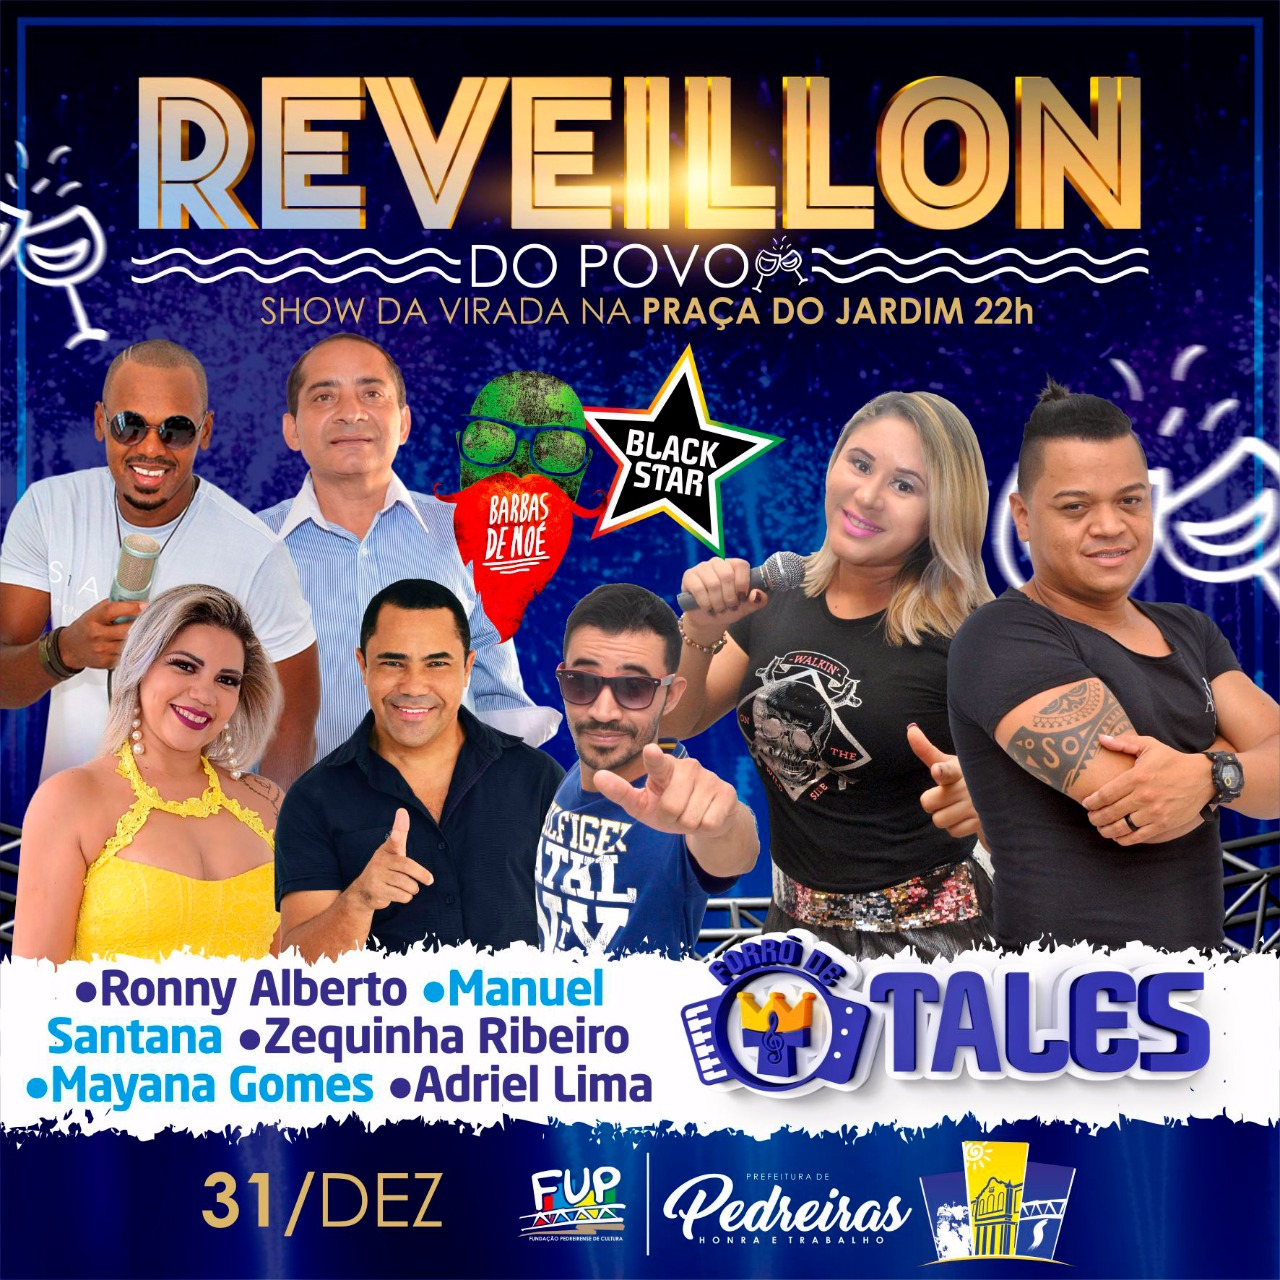 REVEILLON DO POVO 2017